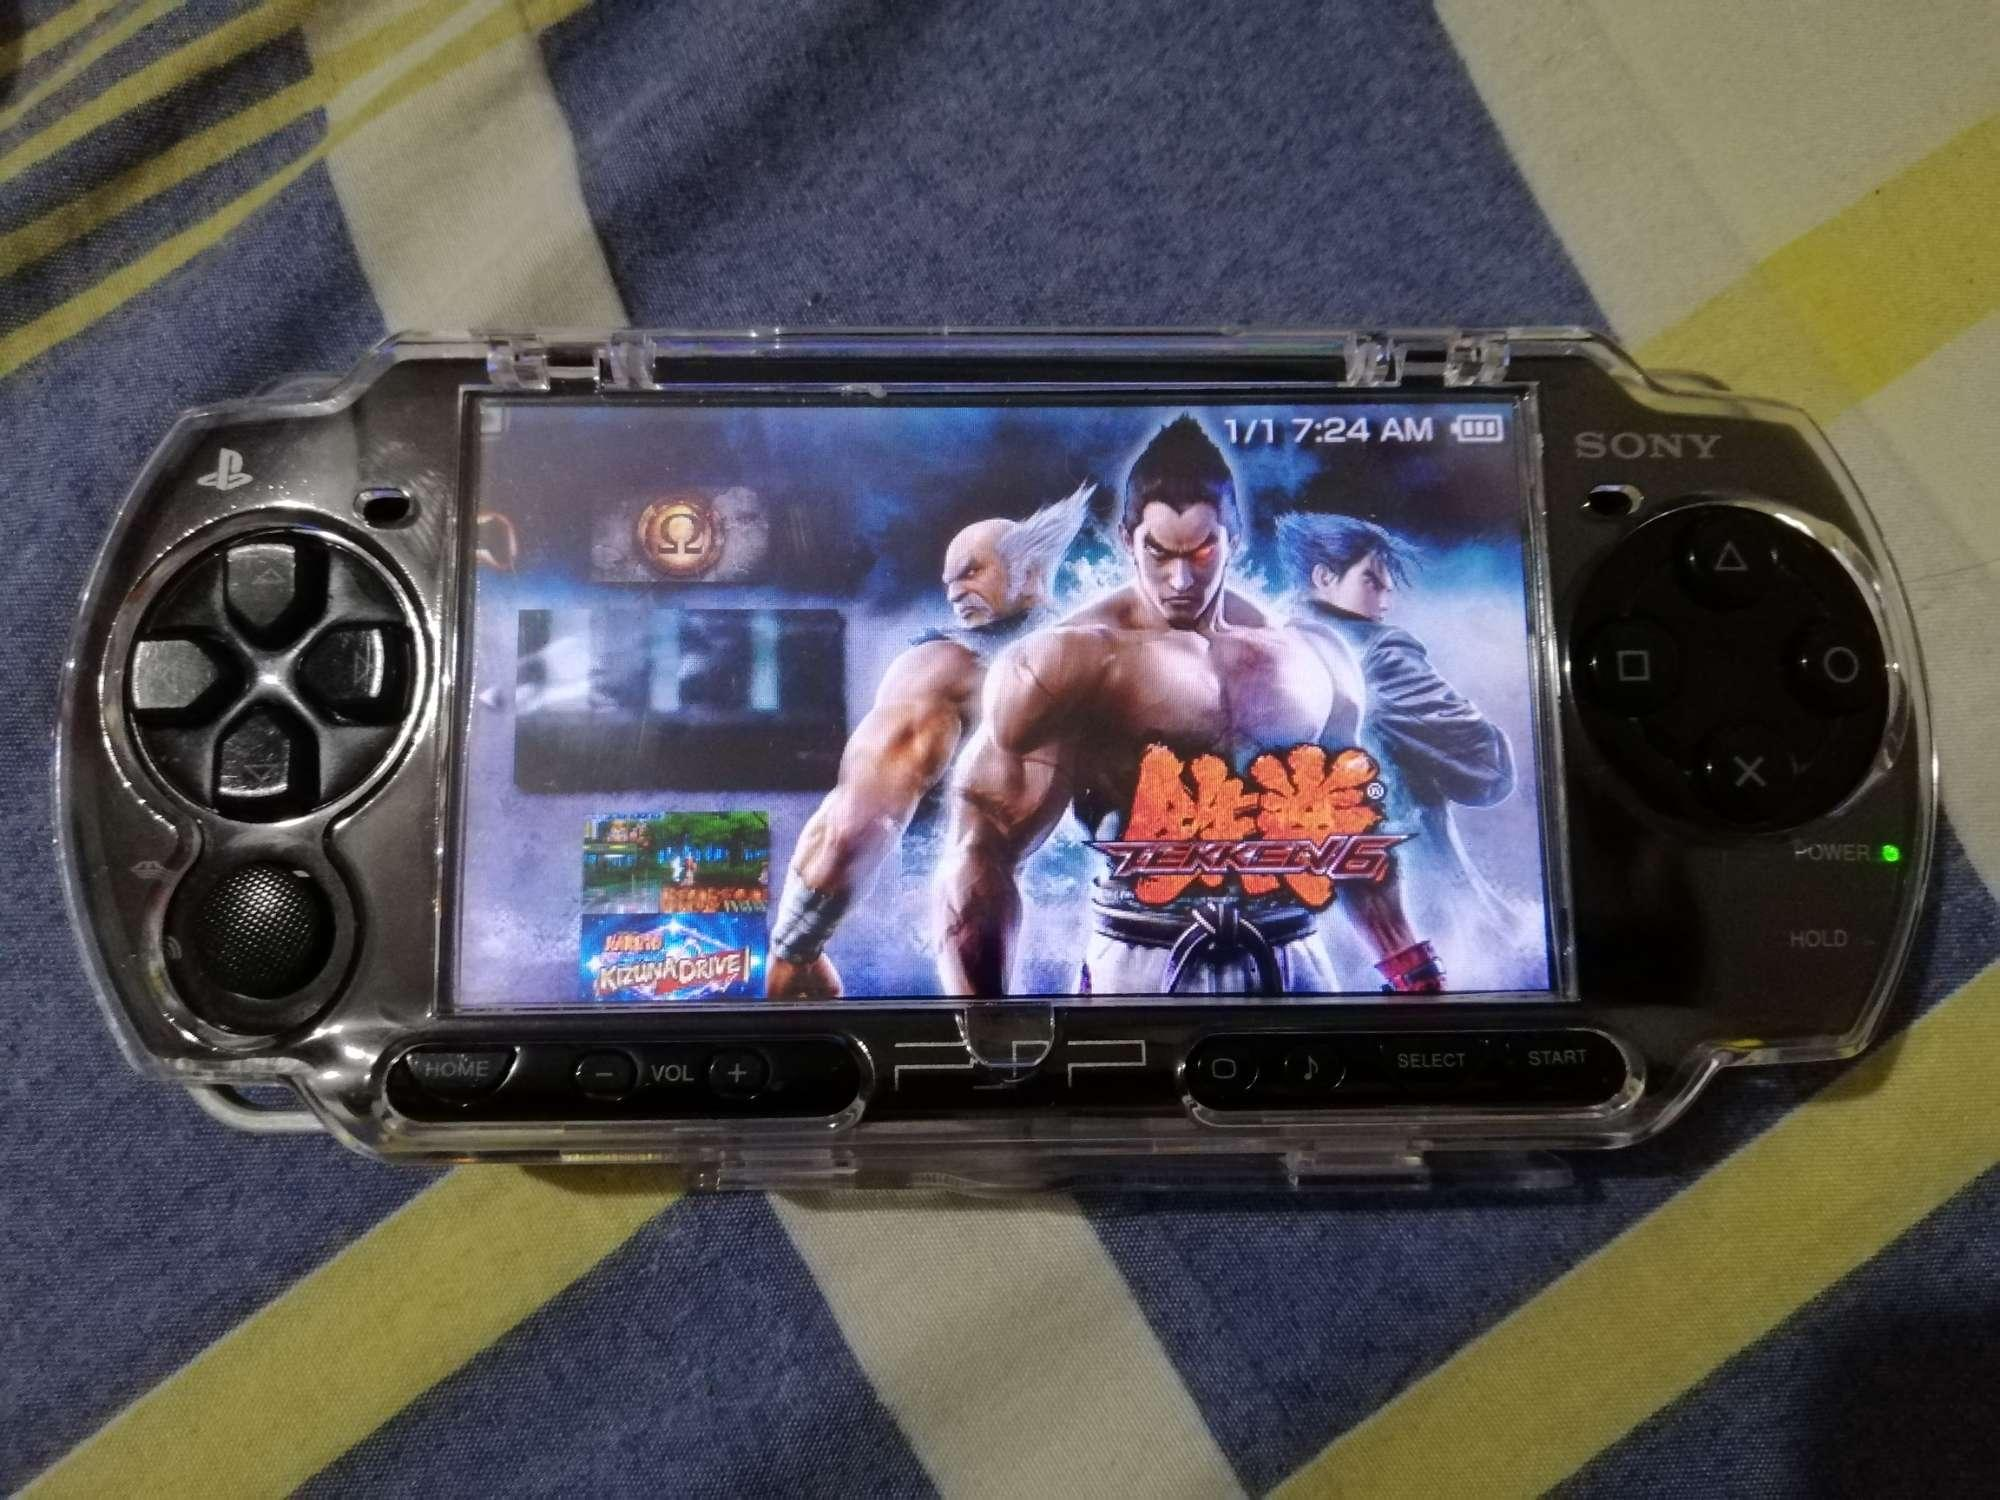 Playstation - Buy Playstation at Best Price in Philippines